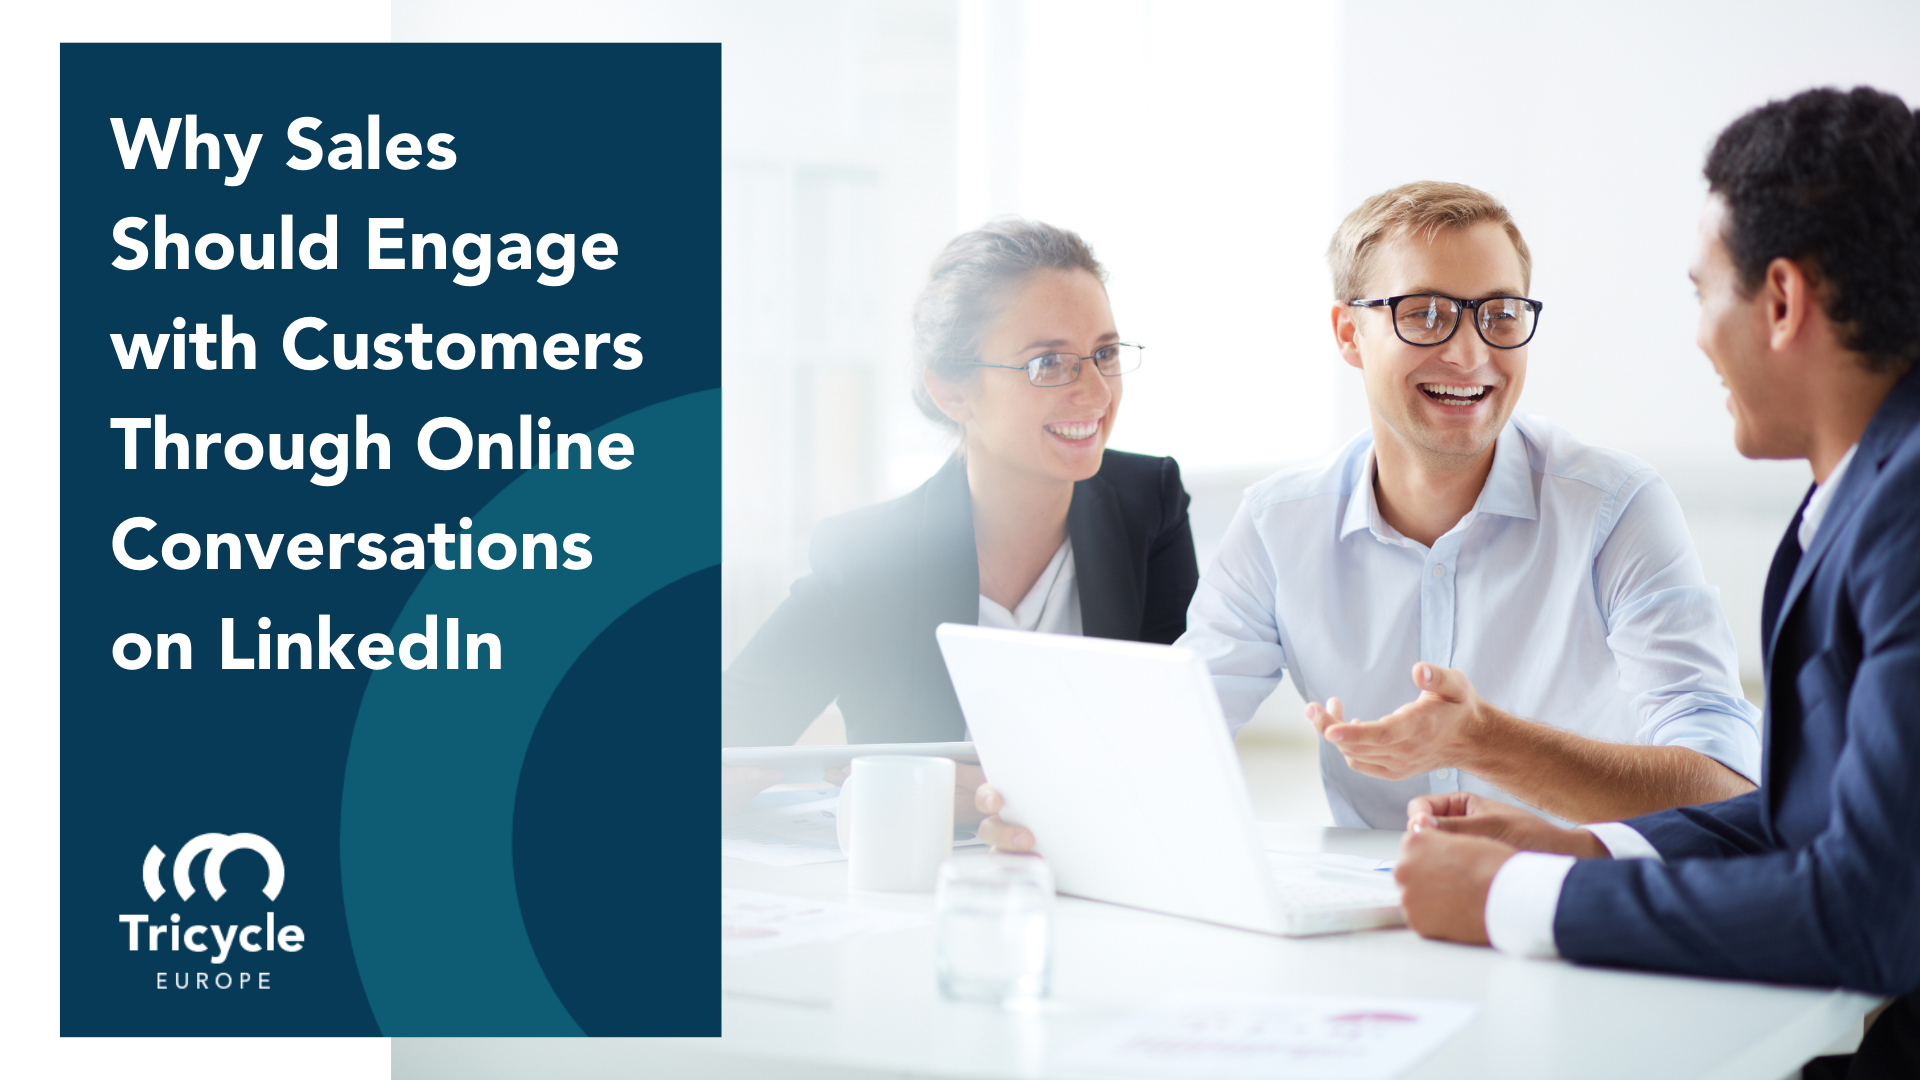 Why Sales Should Engage With Customers Through Online Conversations On LinkedIn